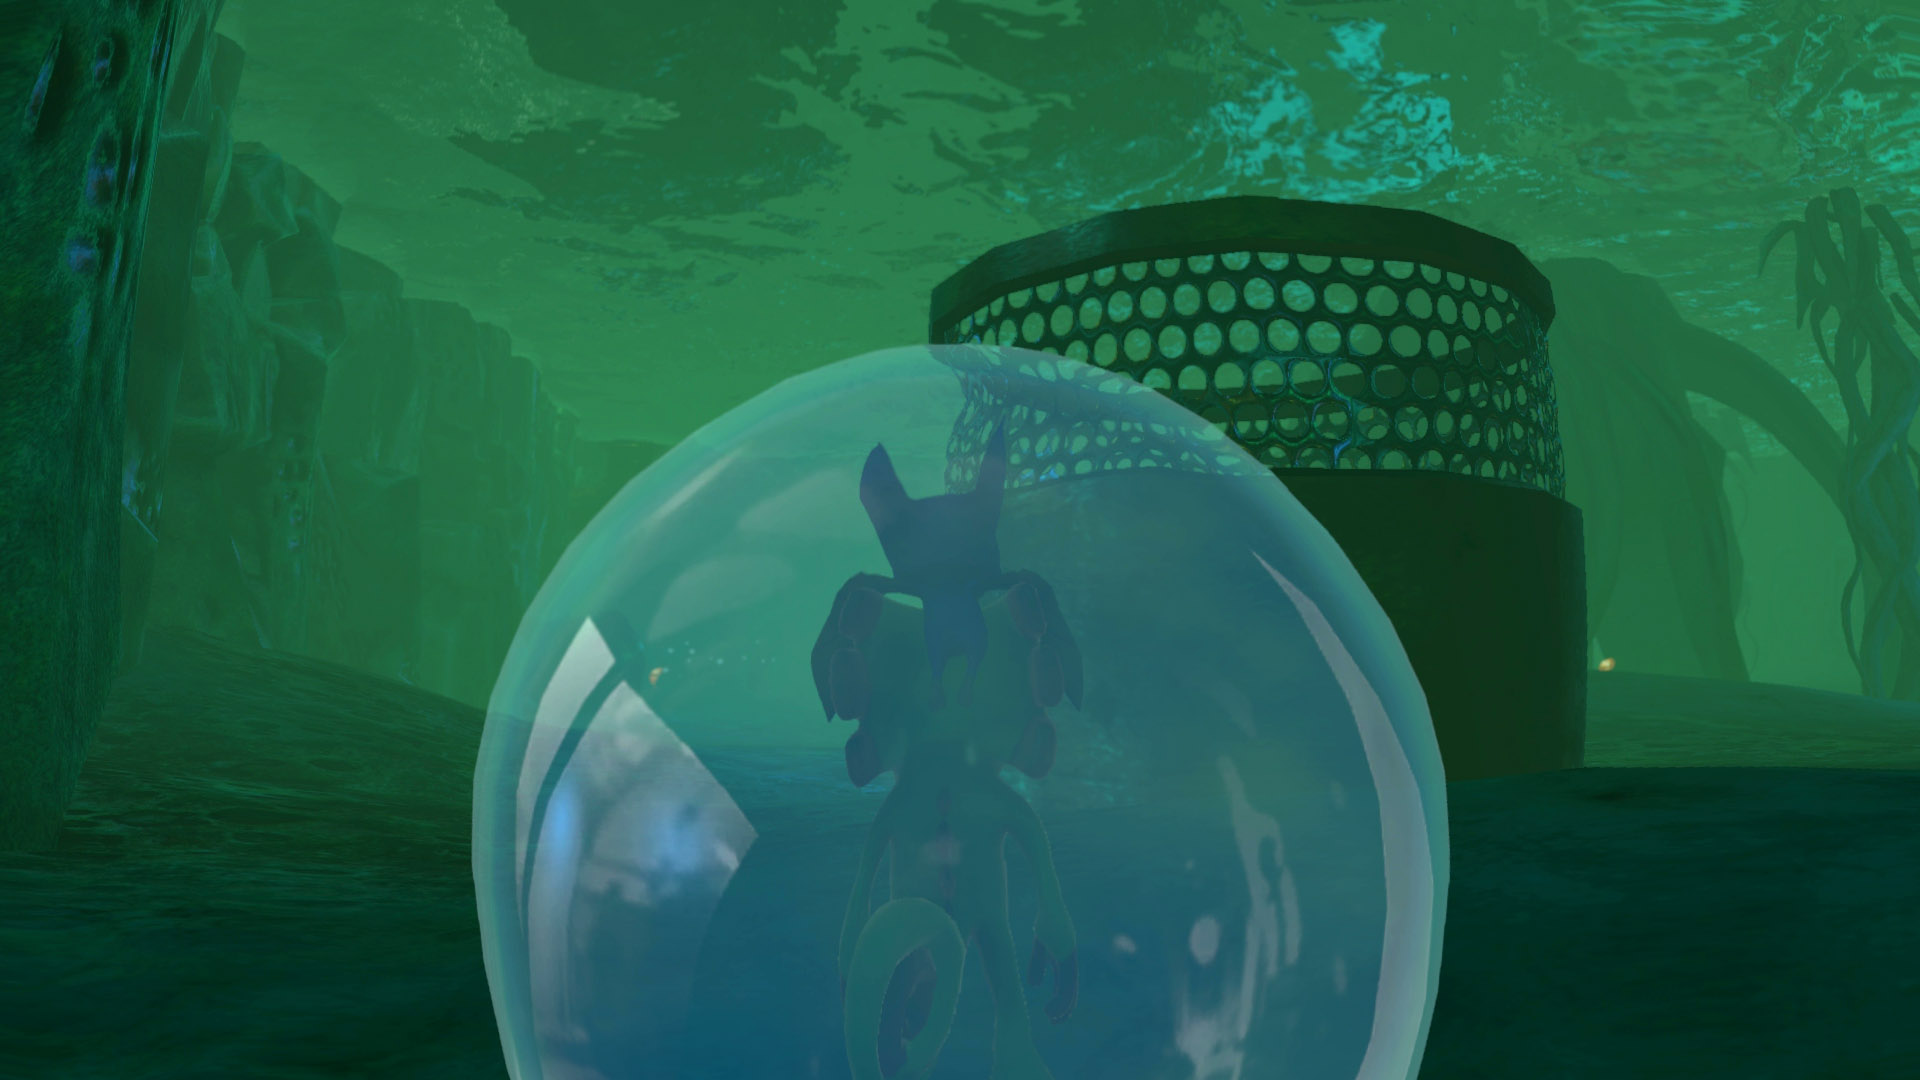 This Mollycool is found beneath the water, you will need Bubble Walk and Sonar 'Splosion to collect it.